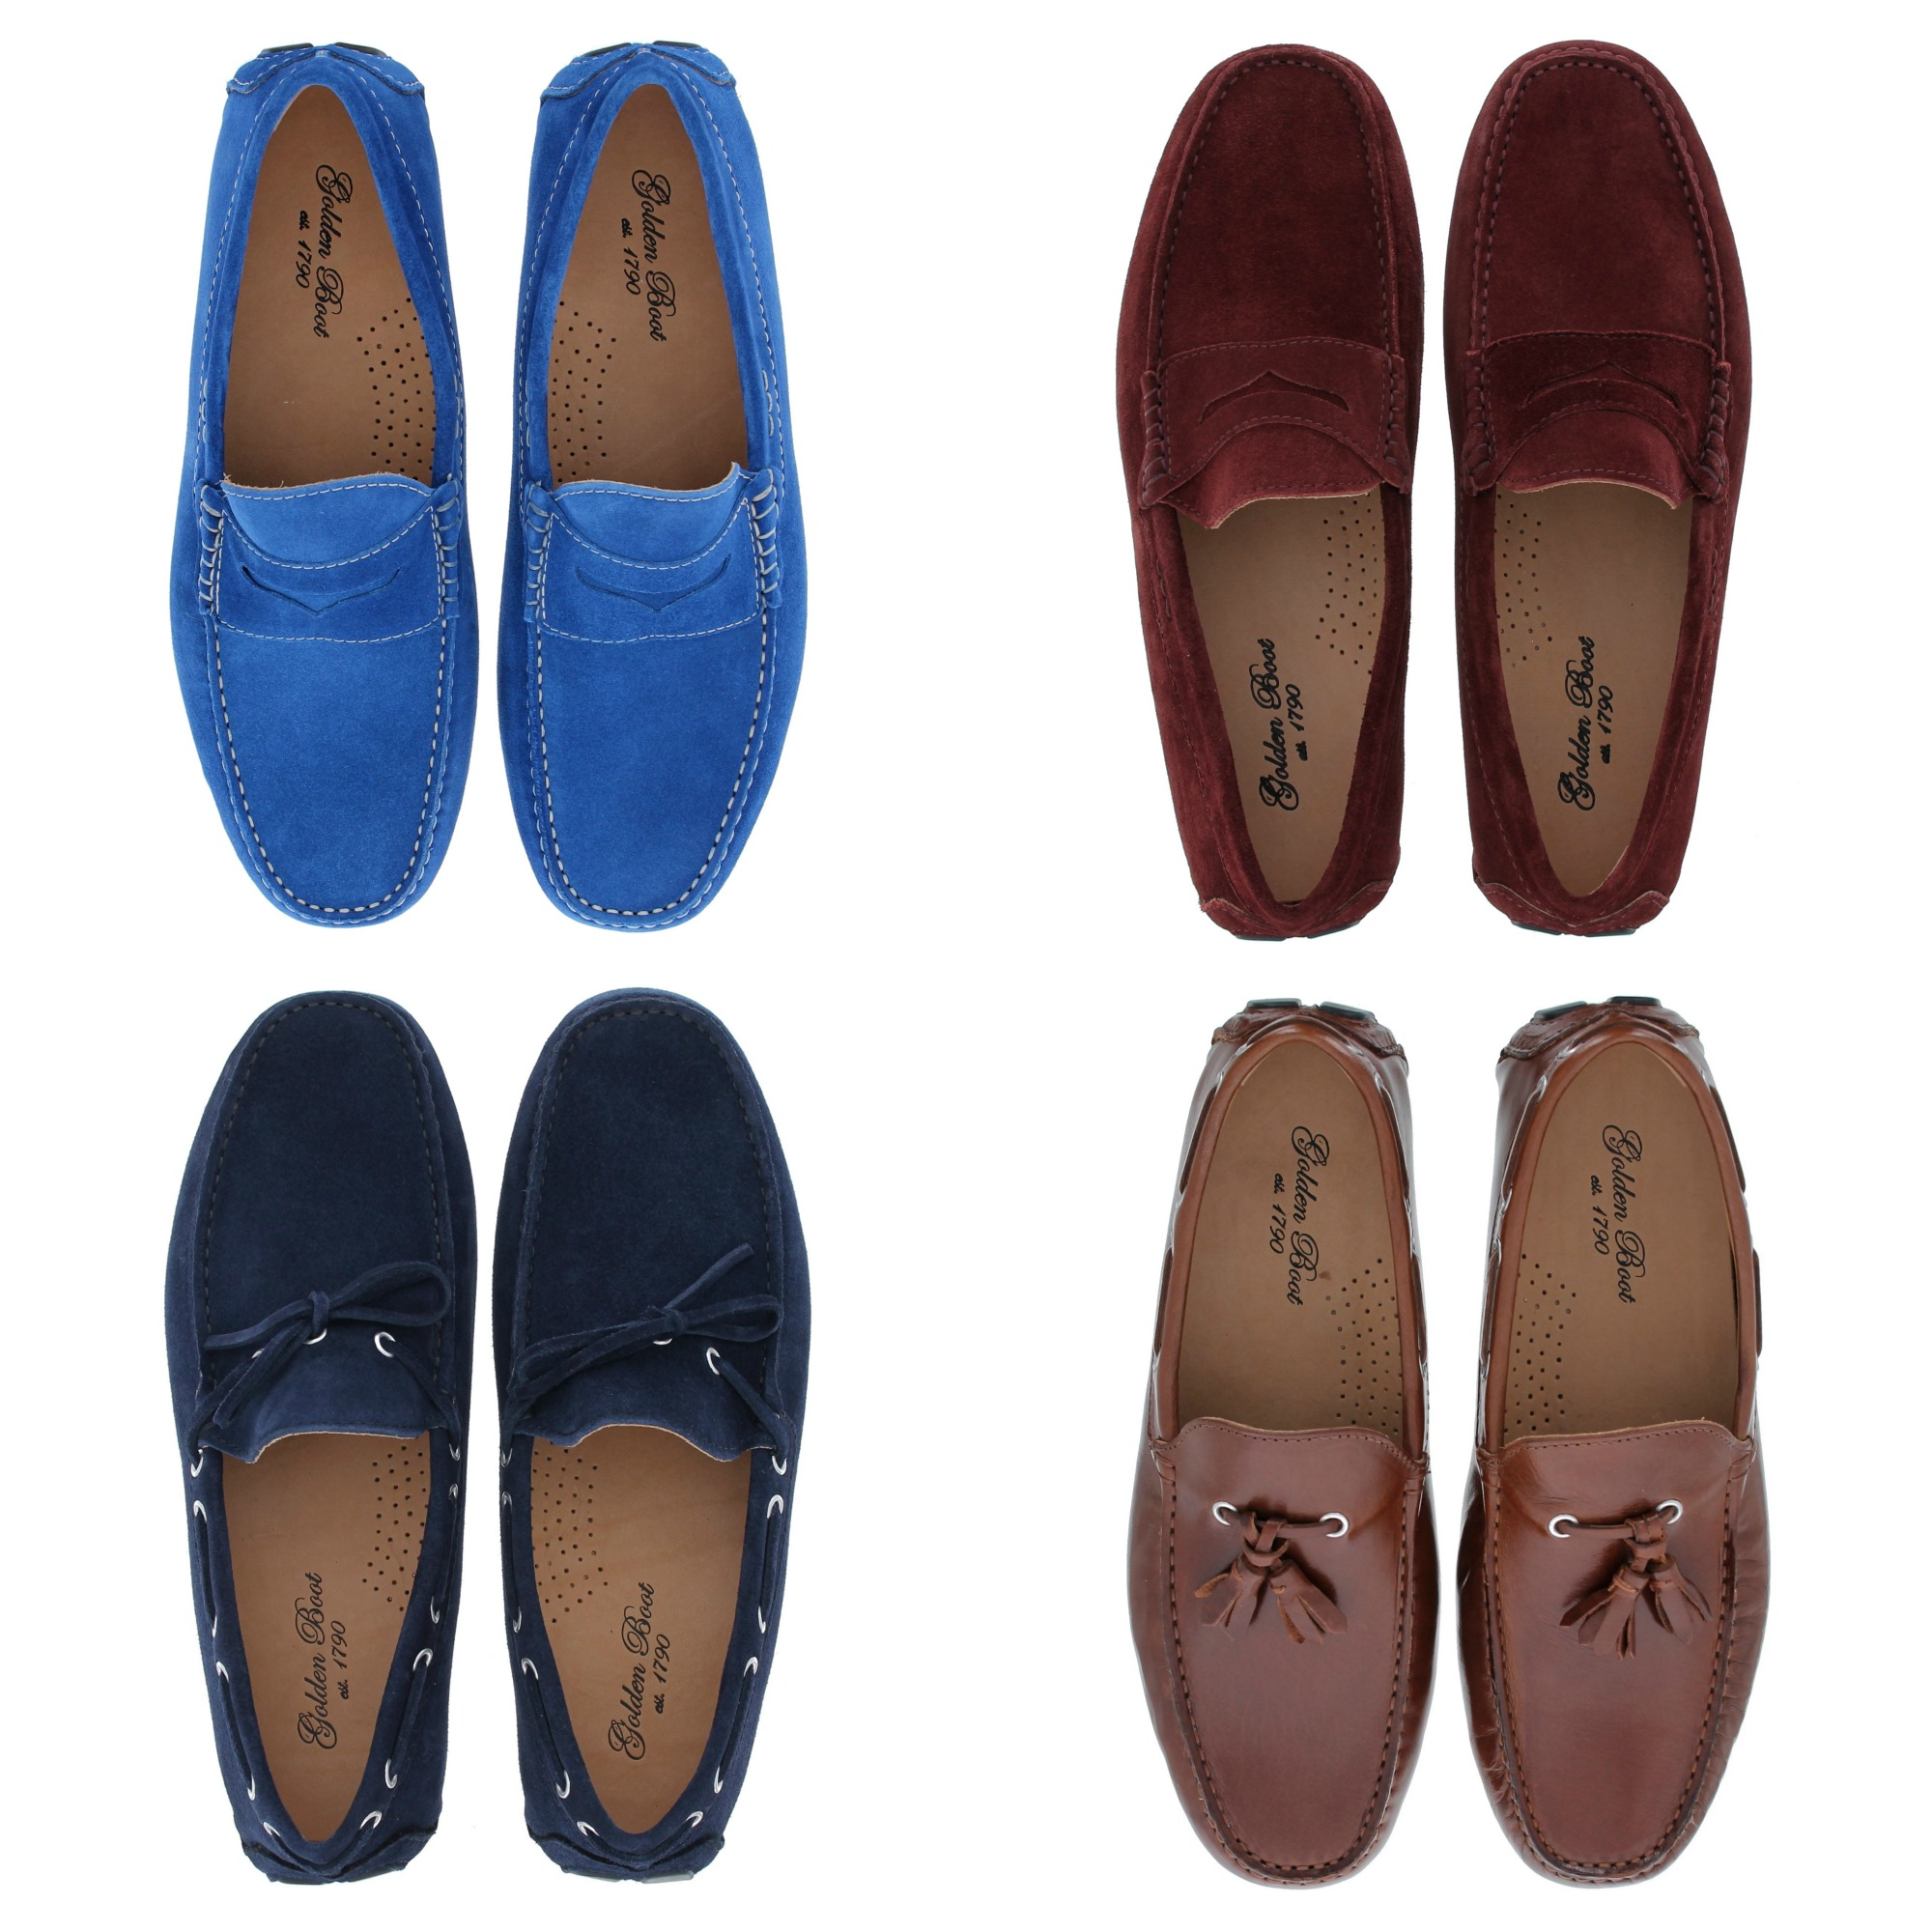 Rich burgeundy and navy - alongside a summery shade of cobalt and classic tan leather